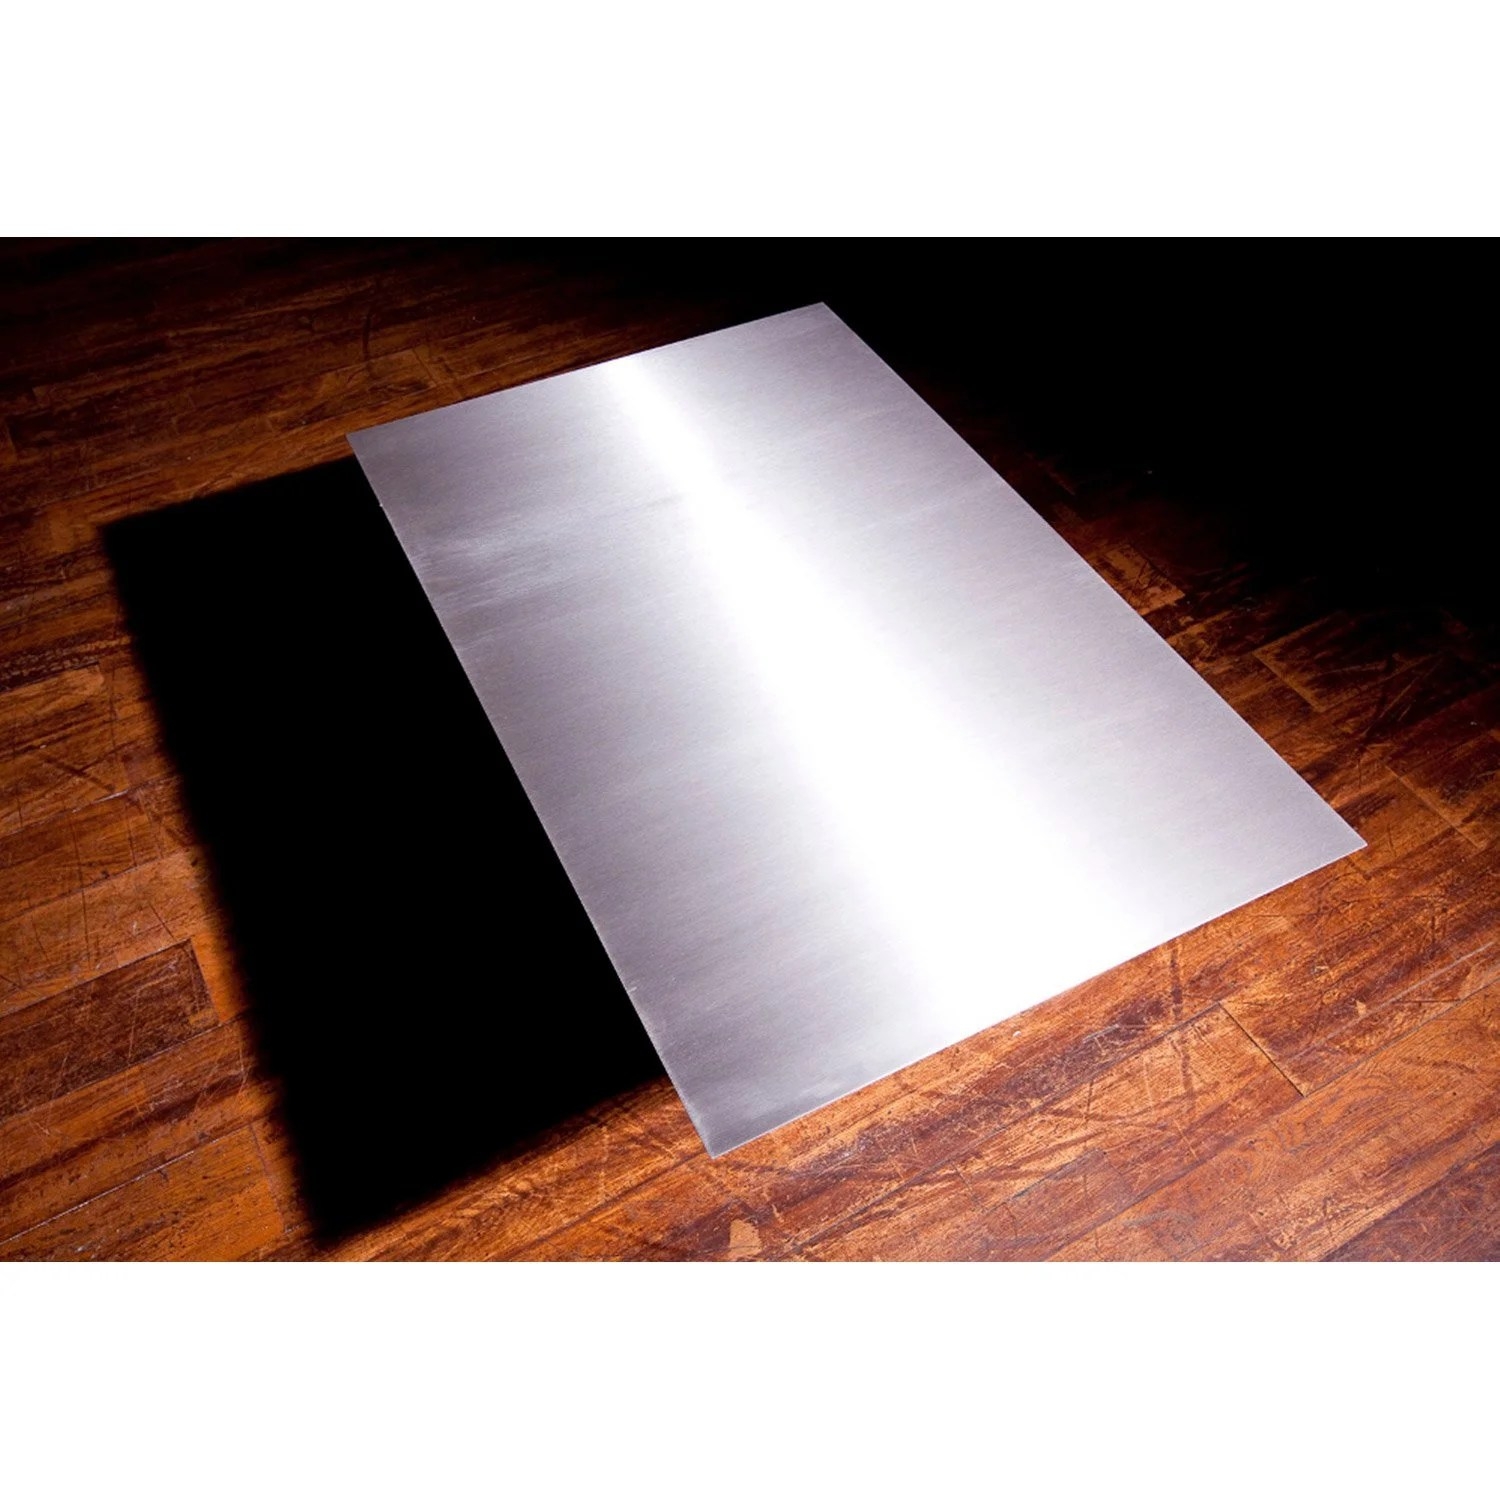 Cache Plaque De Cuisson Leroy Merlin Plaque De Protection Sol Inox Equation L 100 Cm X H 2 Cm